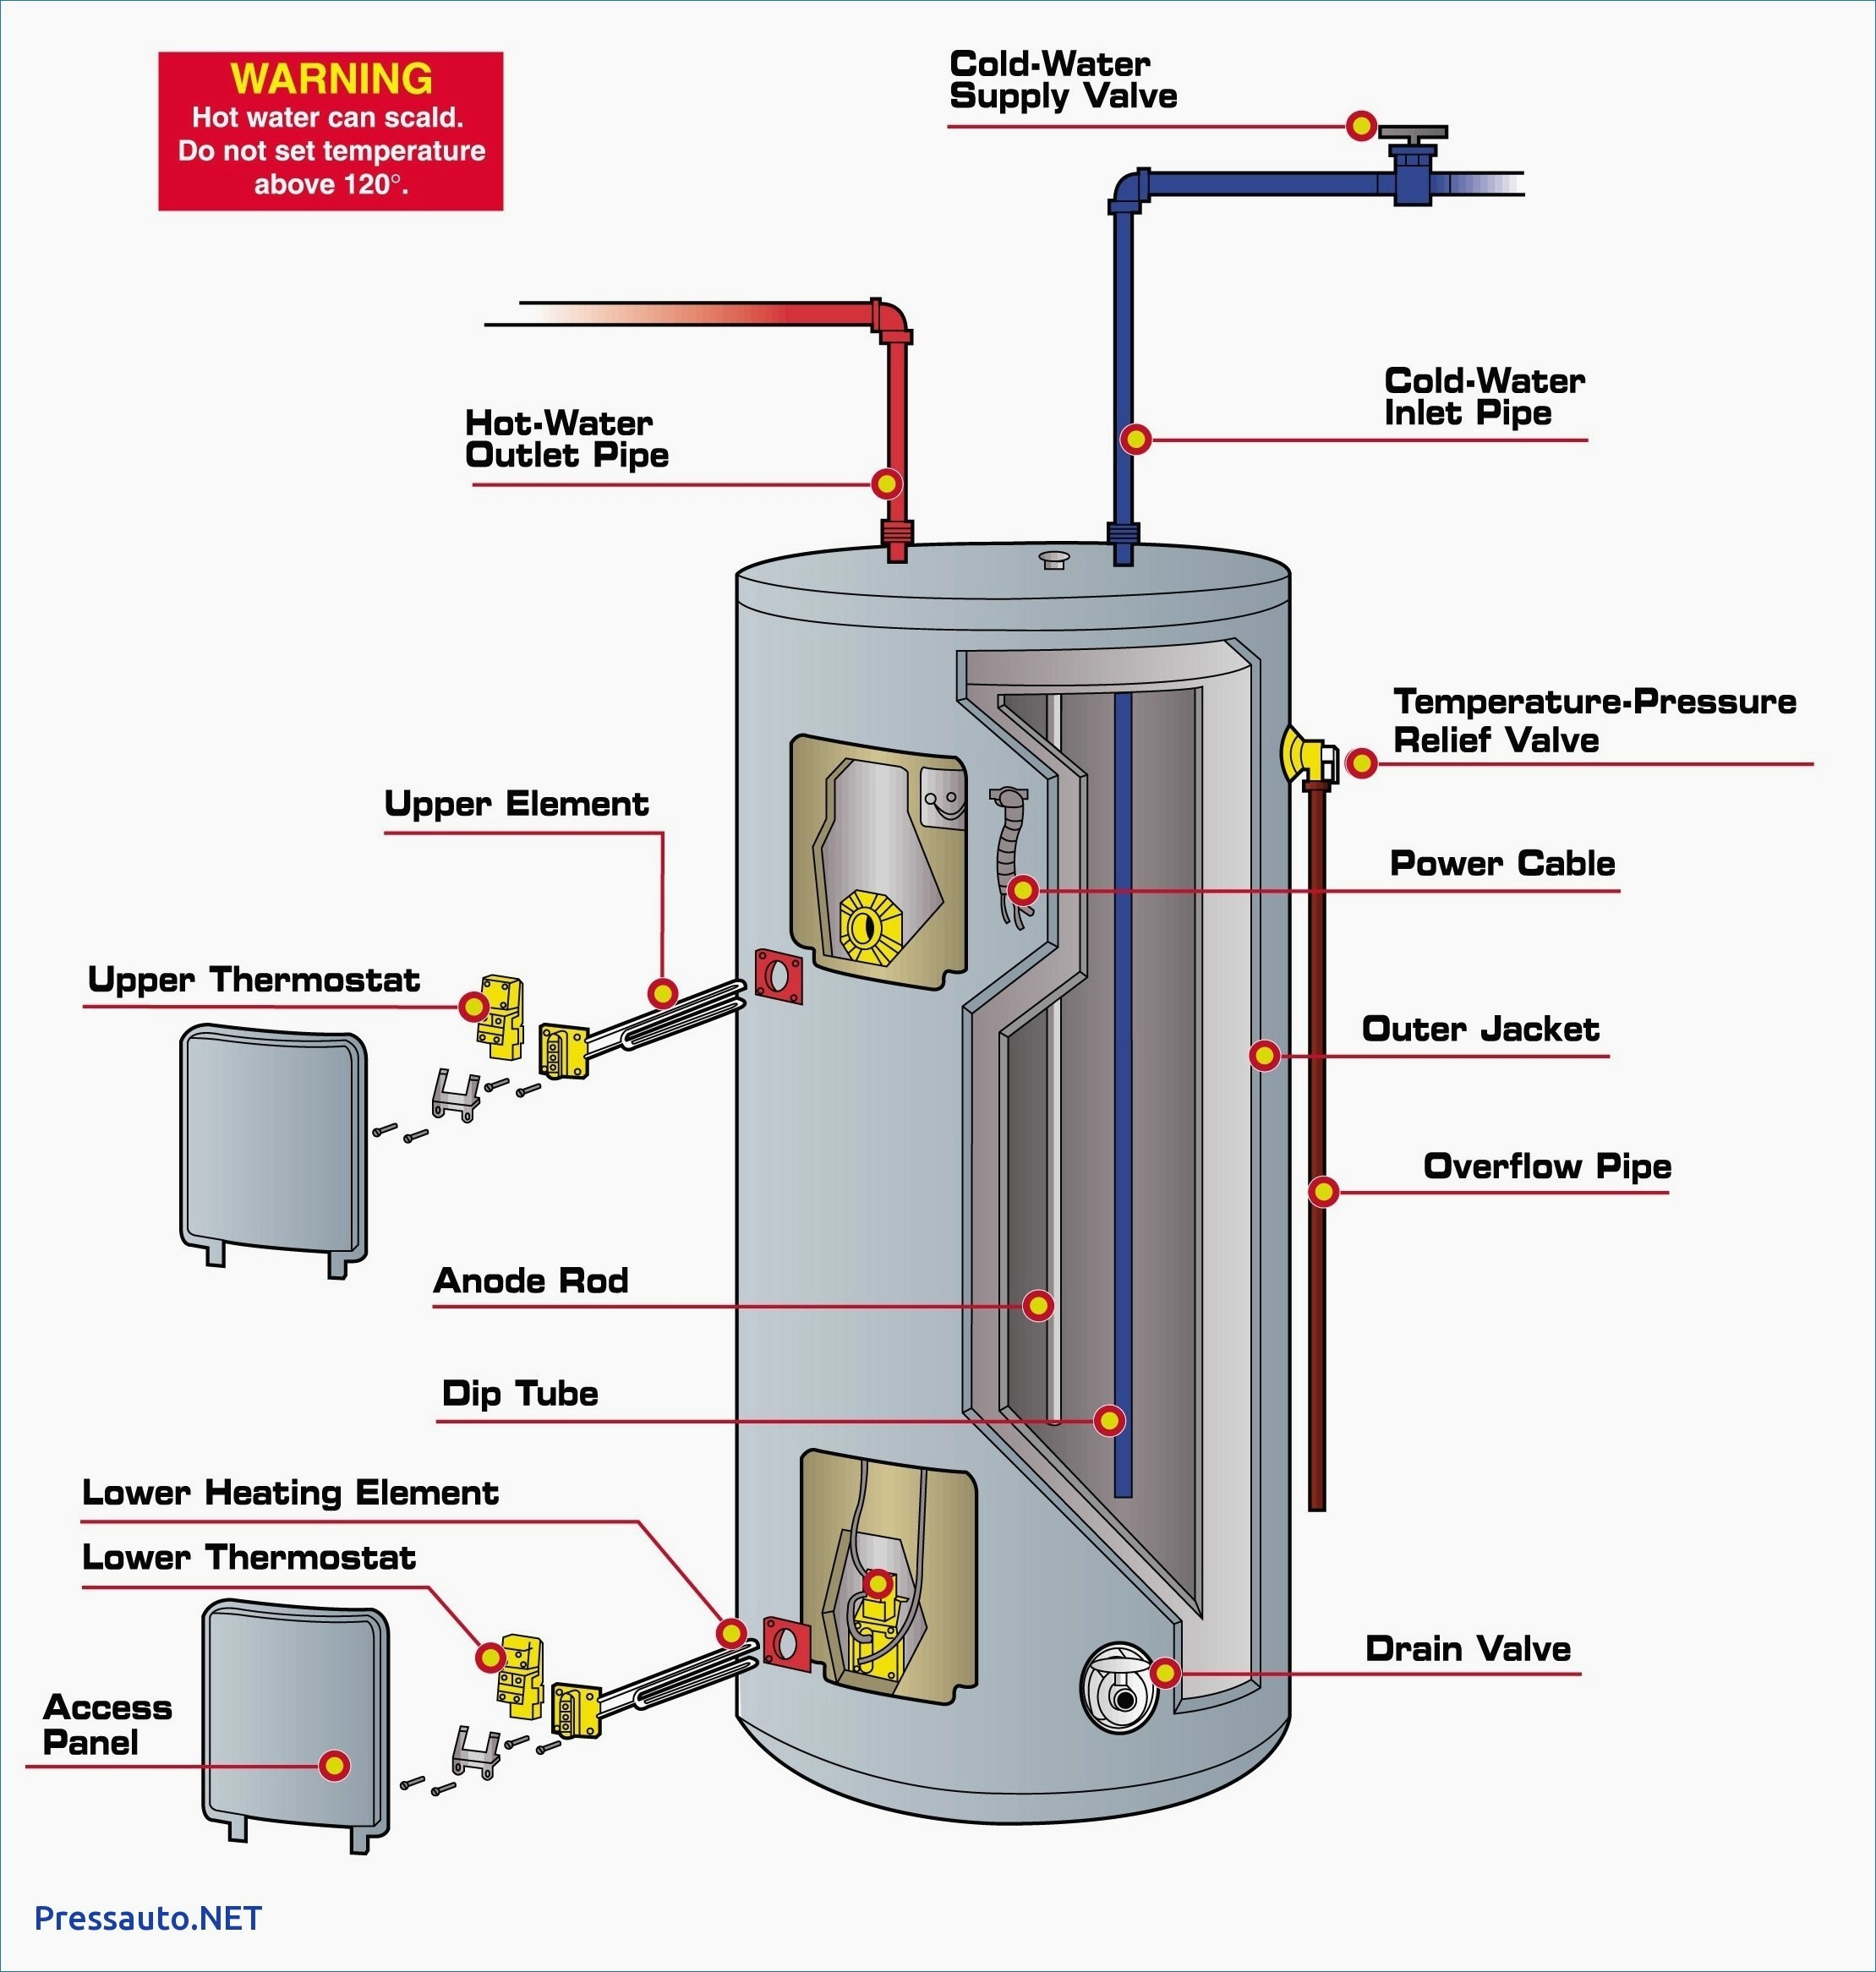 Wiring Diagram Electric Water Heater Fresh New Hot Water Heater Wiring Diagram Diagram